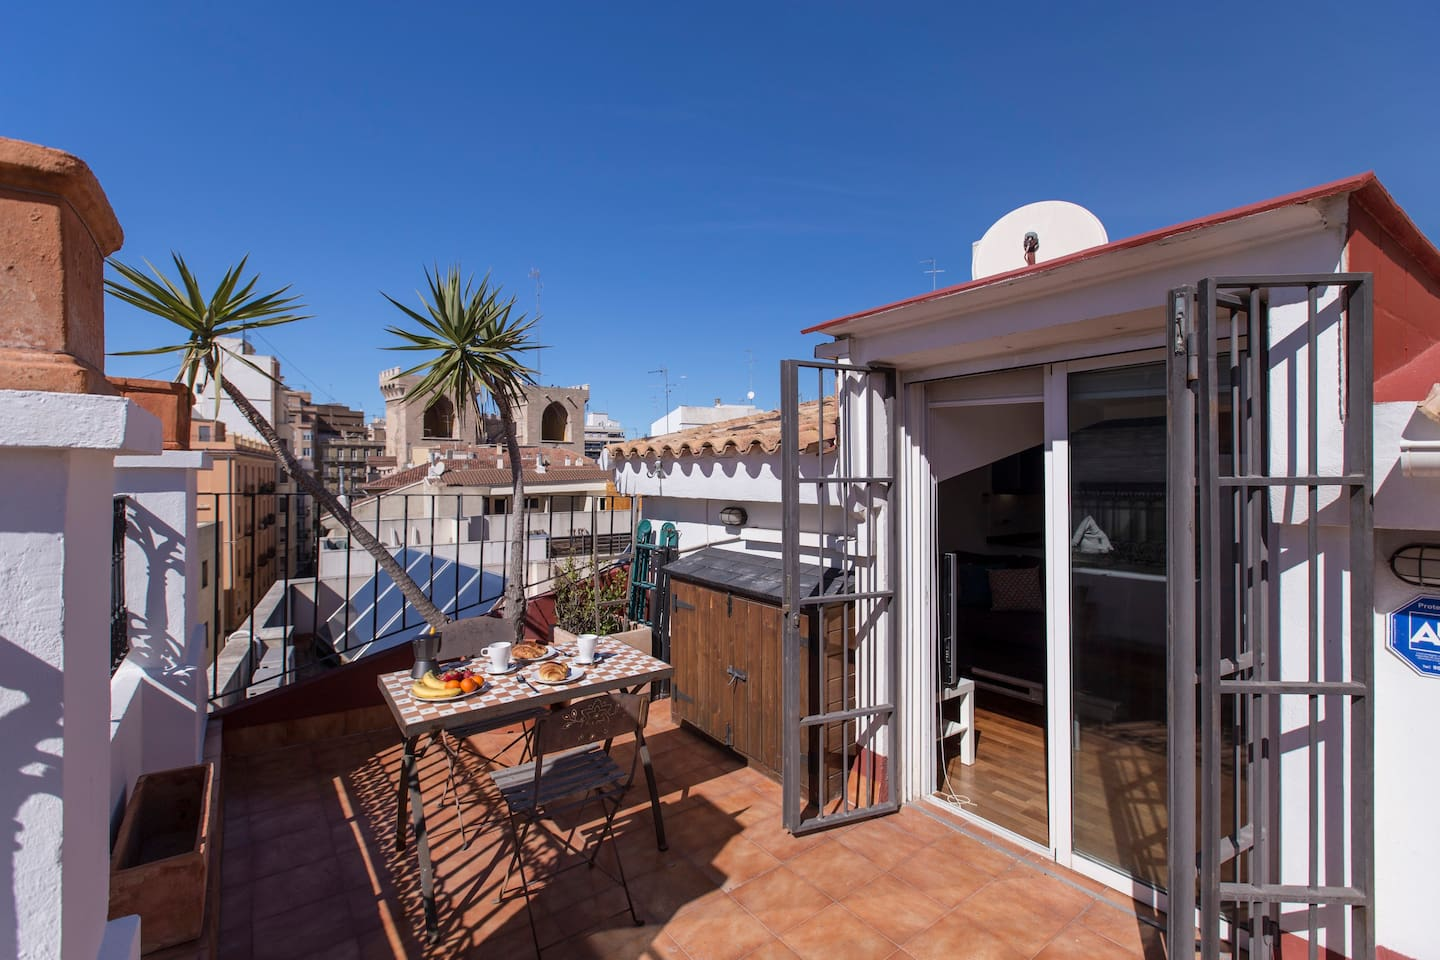 Splendid & sunny private terrace with views to the Quart Towers